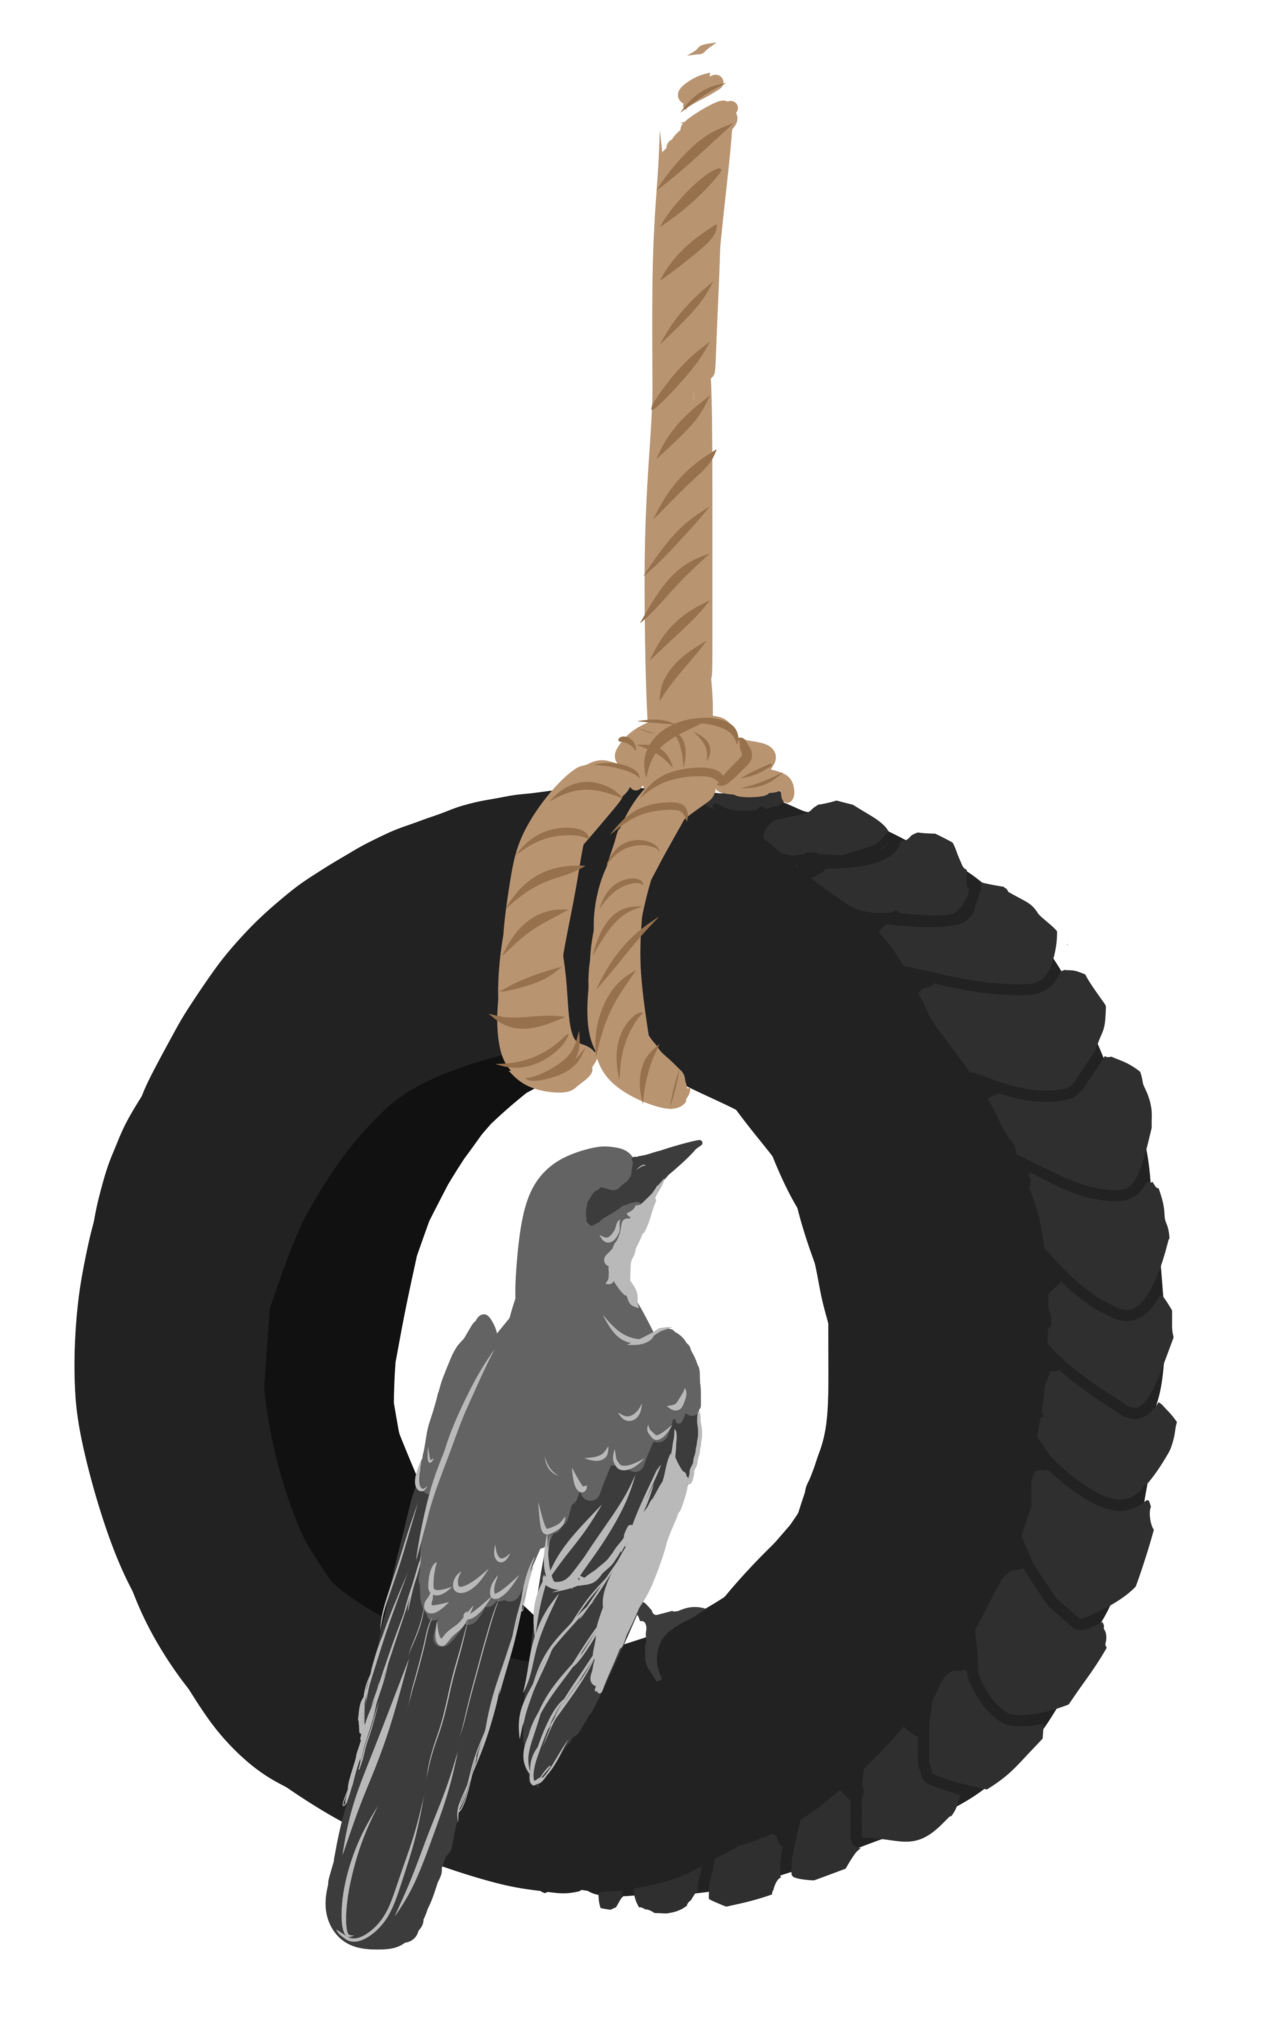 Tree with tire swing clipart image royalty free library To Kill a Mockingbird Small Piece by Nickala on DeviantArt image royalty free library